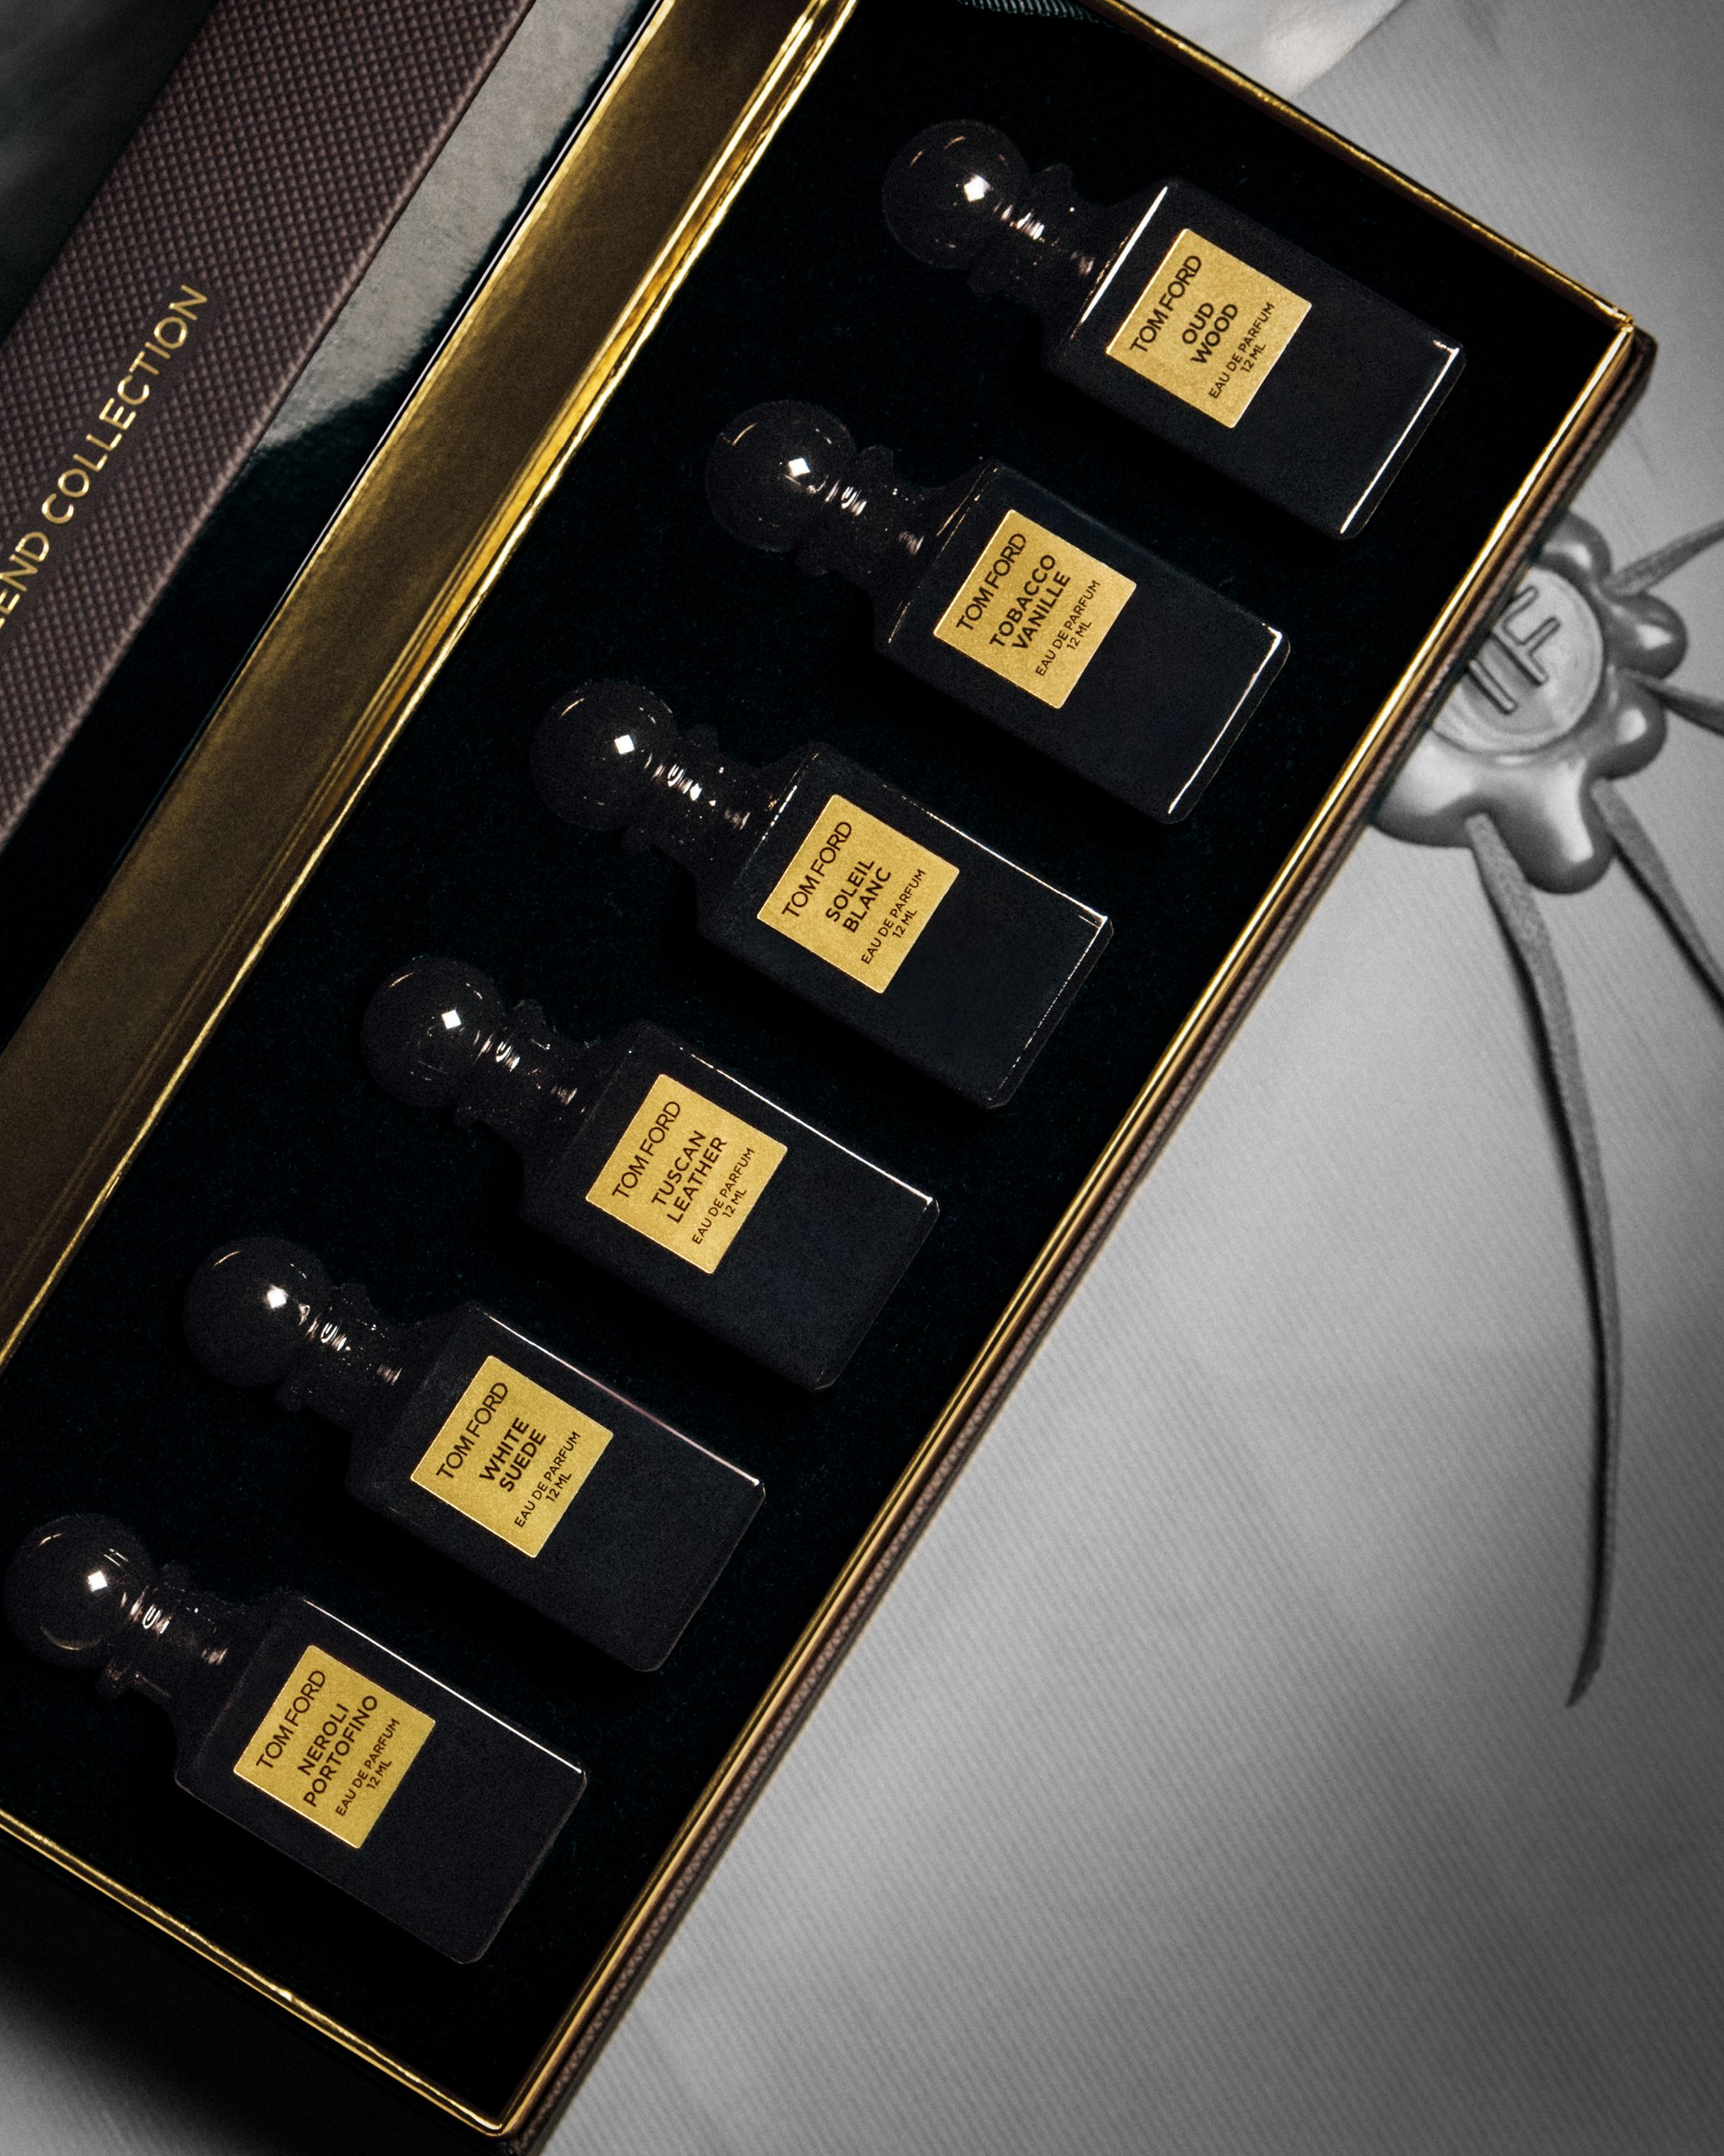 0928542194c2 The Private Blend Collection Coffret featuring six miniature fragrances  from TOM FORD's personal scent laboratory. #TOMFORD #PRIVATEBLEND #TFGIFTS